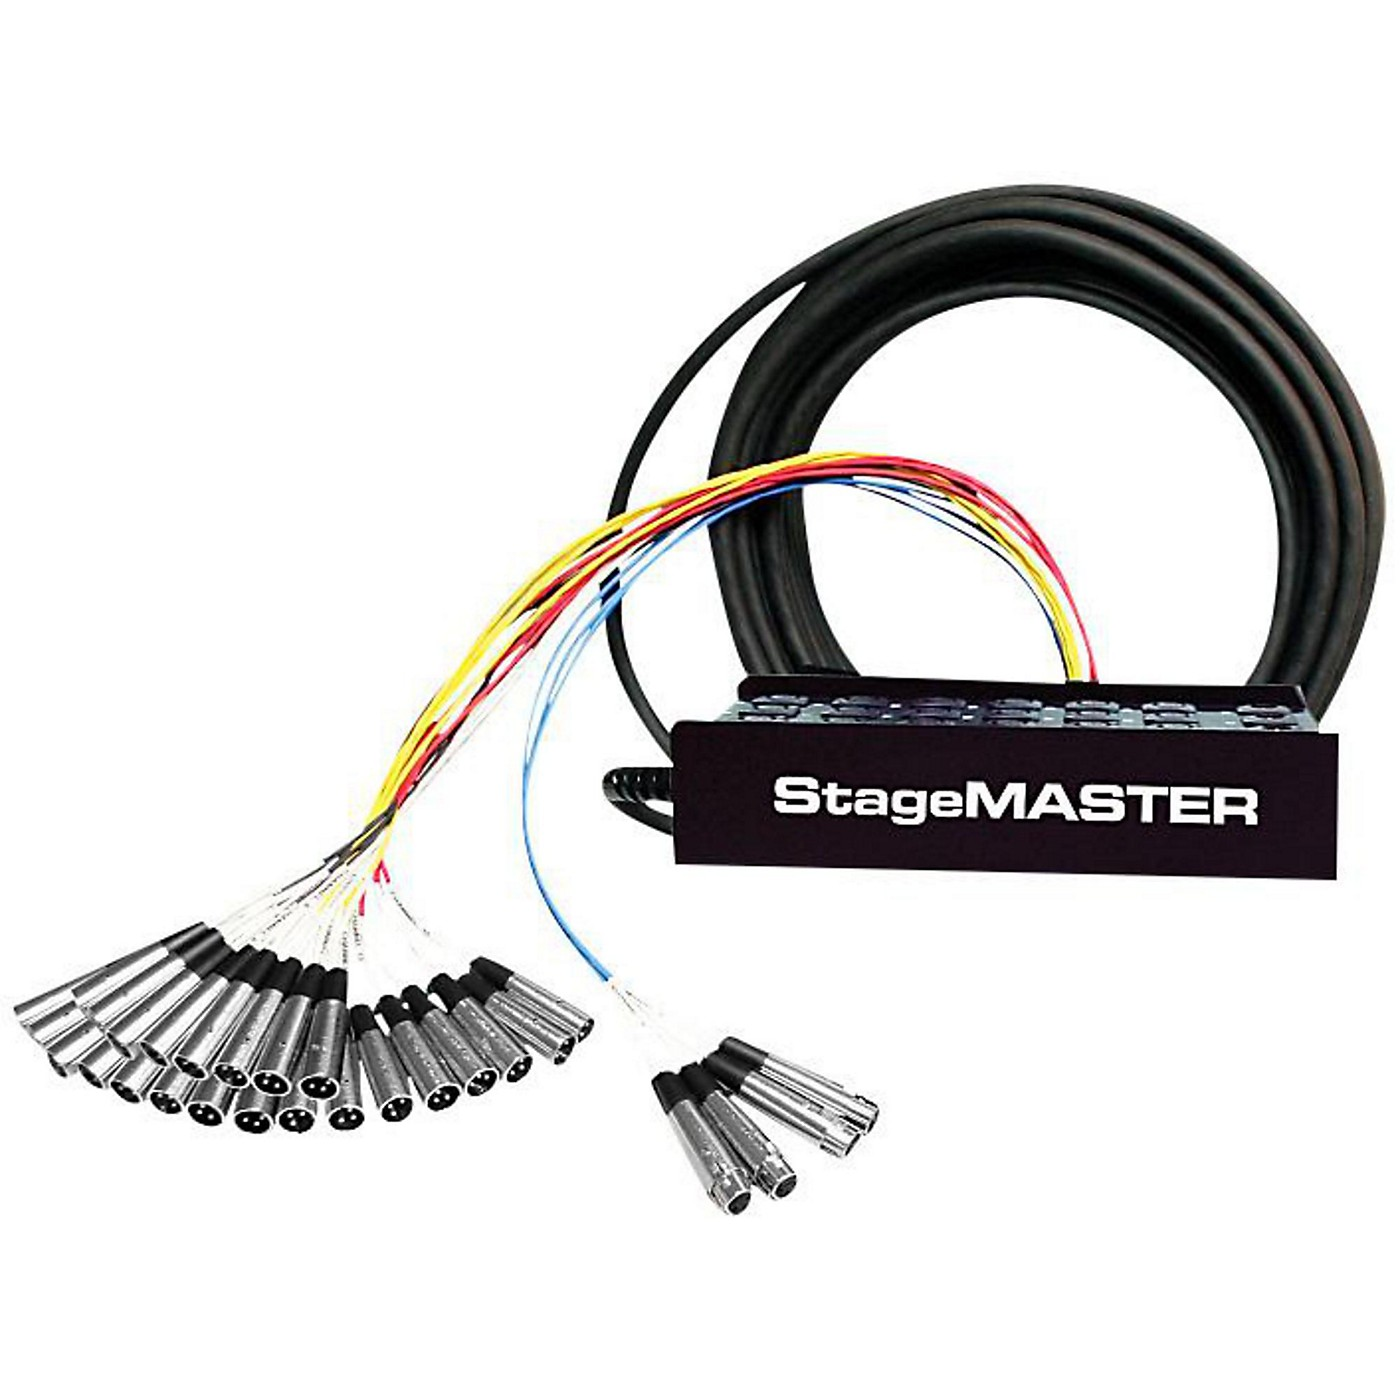 ProCo StageMASTER SMC Series 28-Channel Snake thumbnail